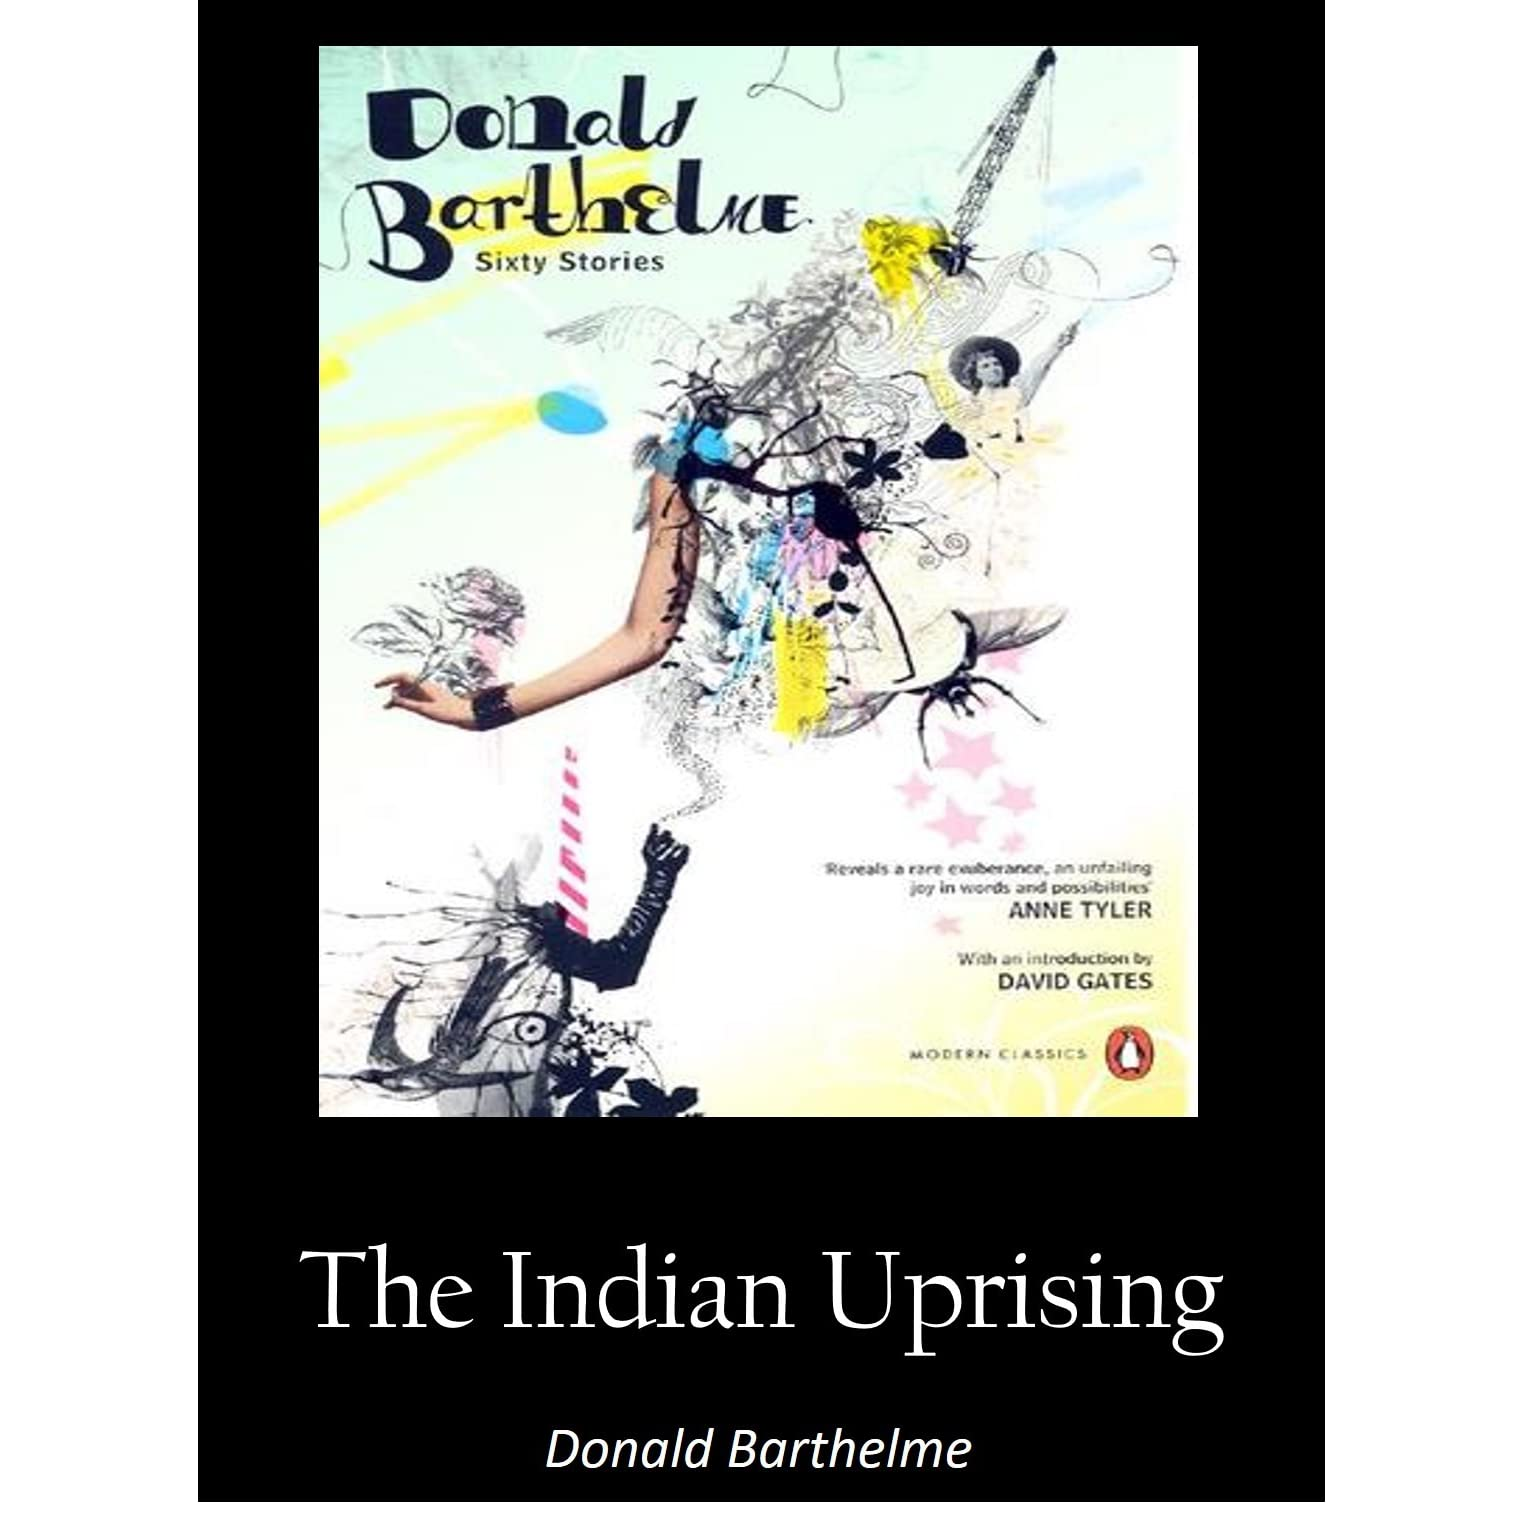 Image result for the indian uprising donald barthelme